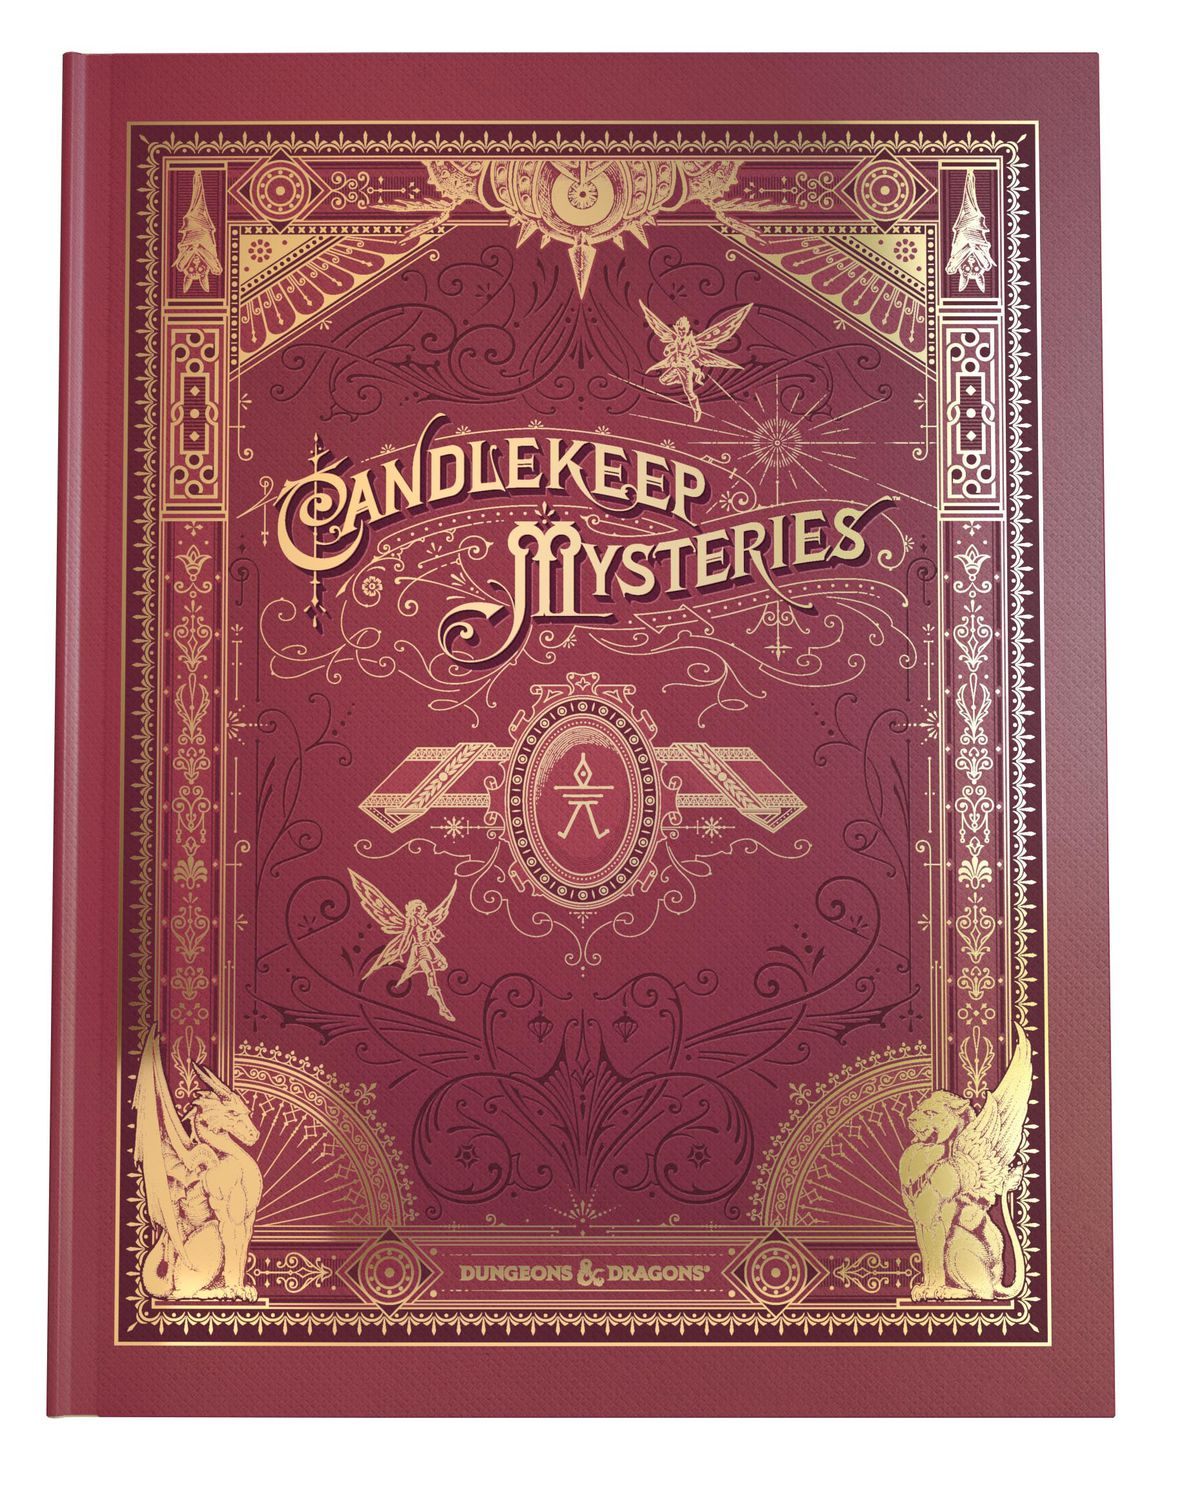 The alternate cover for Candlekeep Mysteries looks like a leather-bound book with gilded accents.